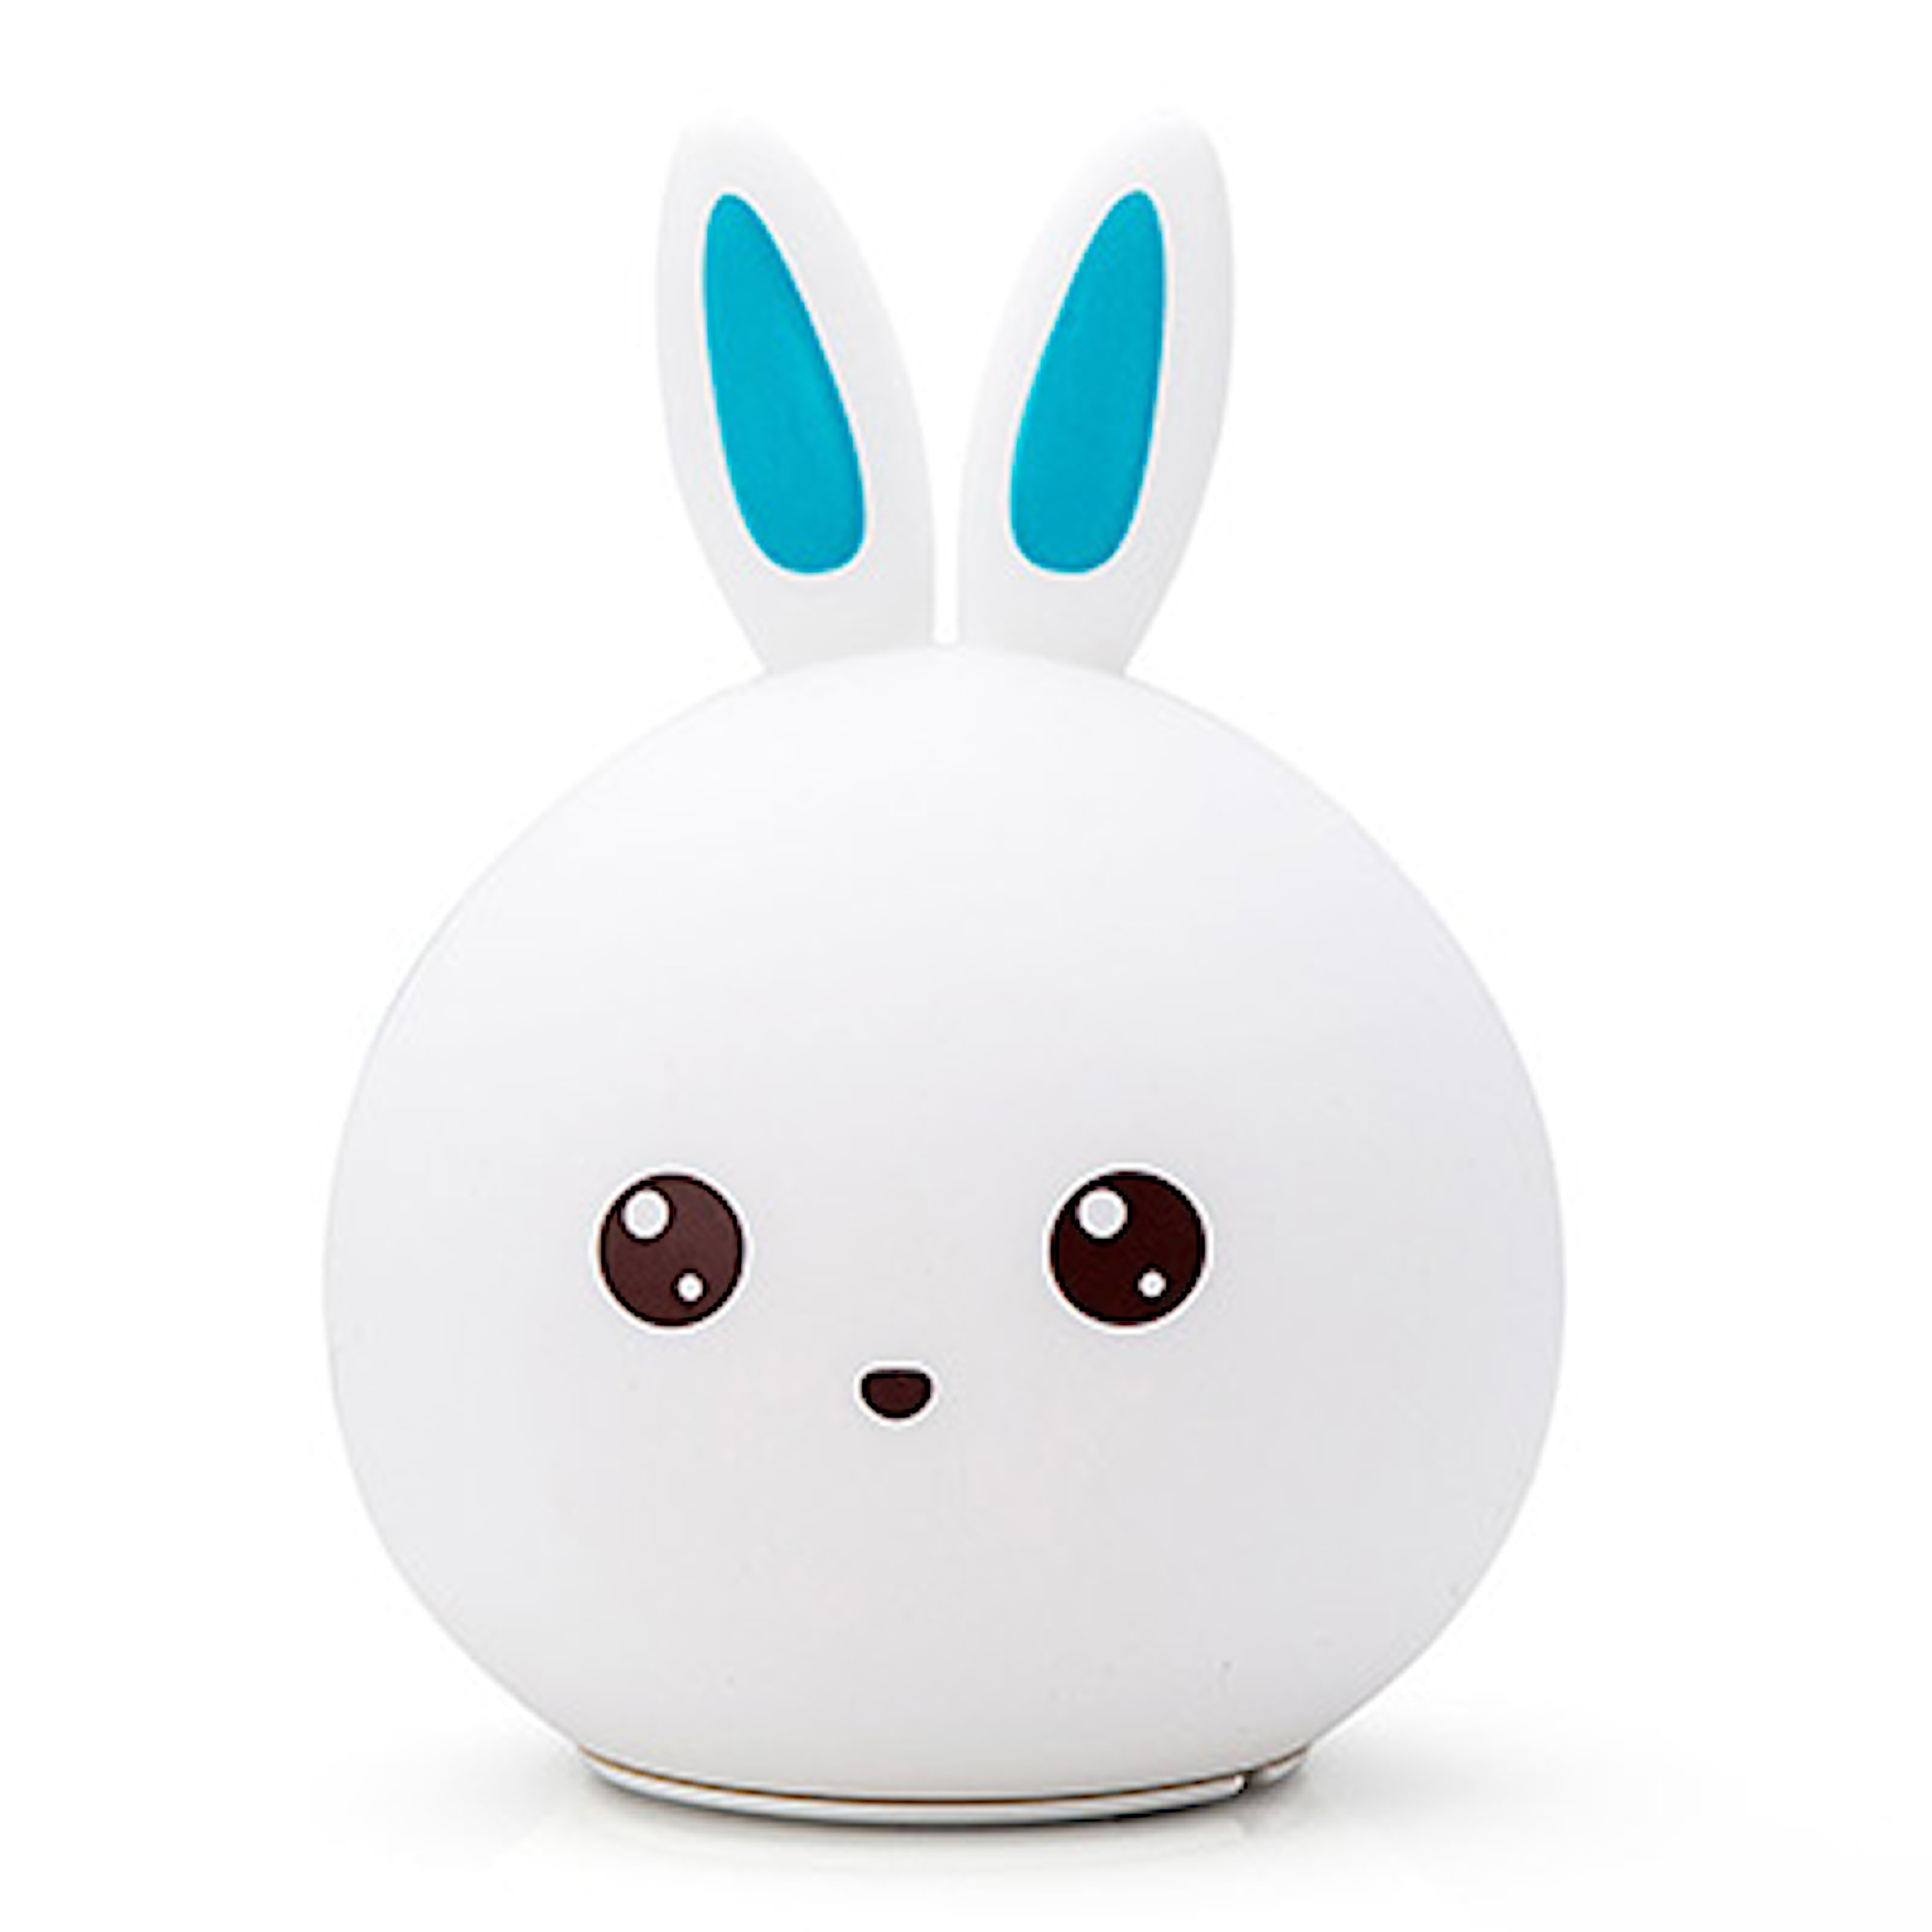 Blå, Rabbit Light Rechargeable, Kaninlampa, ,